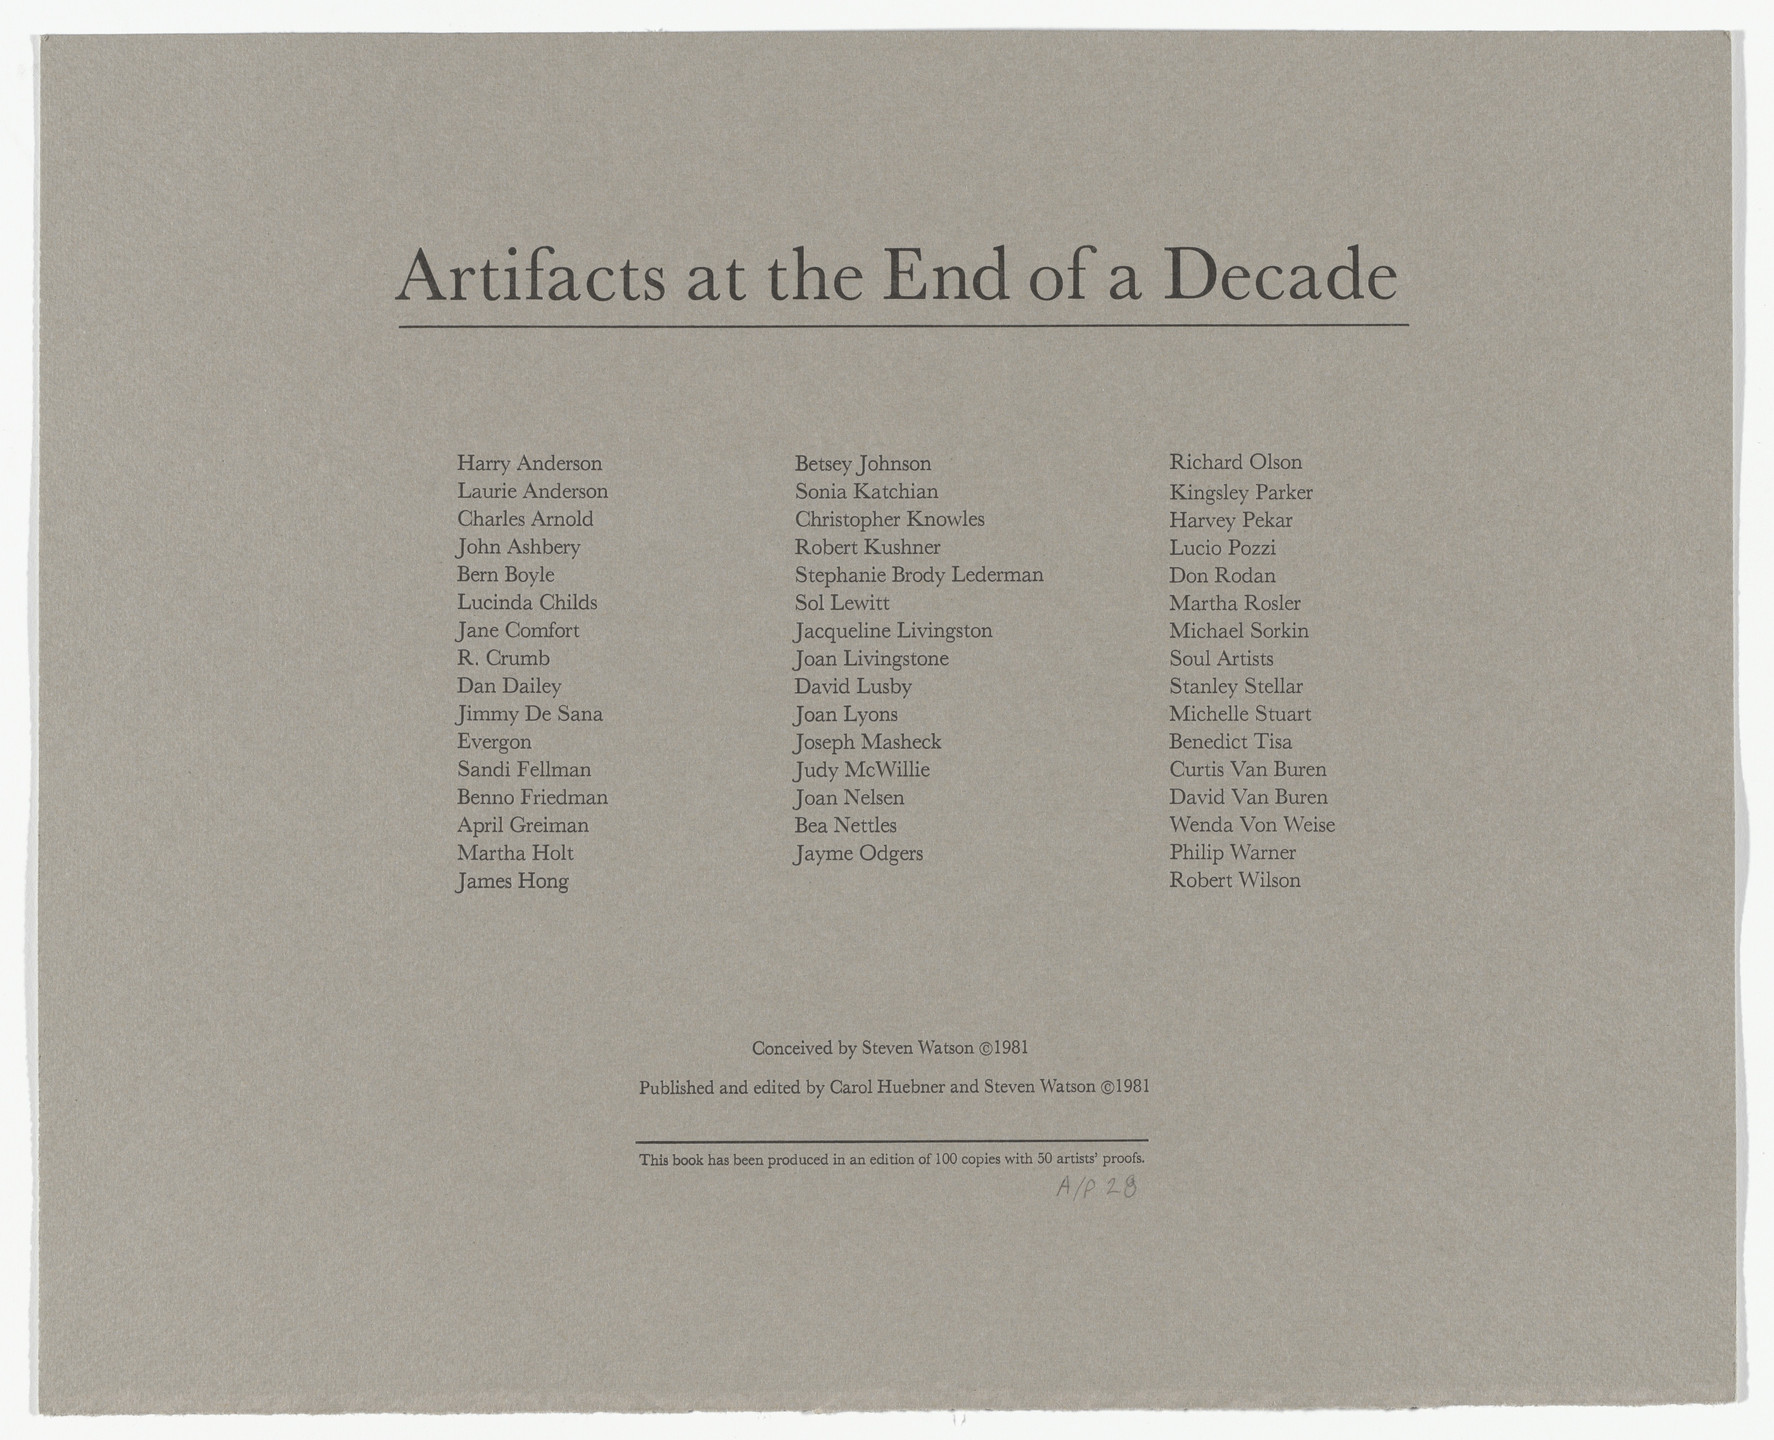 Various Artists, Harry Anderson, Laurie Anderson, Charles A. Arnold Jr., John Ashbery, Bern Boyle, Lucinda Childs, Jane Comfort, R. Crumb, Dan Dailey, Jimmy DeSana, Evergon, Sandi Fellman, Benno Friedman, April Greiman, Martha Holt, James Hong, Betsey Johnson, Sonia Katchian, Christopher Knowles, Robert Kushner, Stephanie Brody Lederman, Sol LeWitt, Jacqueline Livingston, Joan Livingstone, David Lusby, Joan Lyons, Joseph Masheck, Judith McWillie, Joan Nelsen, Bea Nettles, Jayme Odgers, Richard Olson, Kingsley Parker, Harvey Pekar, Lucio Pozzi, Don Rodan, Martha Rosler, Michael Sorkin, Soul Artists, Stanley Stellar, Michelle Stuart, Benedict Tisa, Curtis Van Buren, Wenda Von Weise, Philip Warner, Robert Wilson. Artifacts at the End of a Decade. 1981